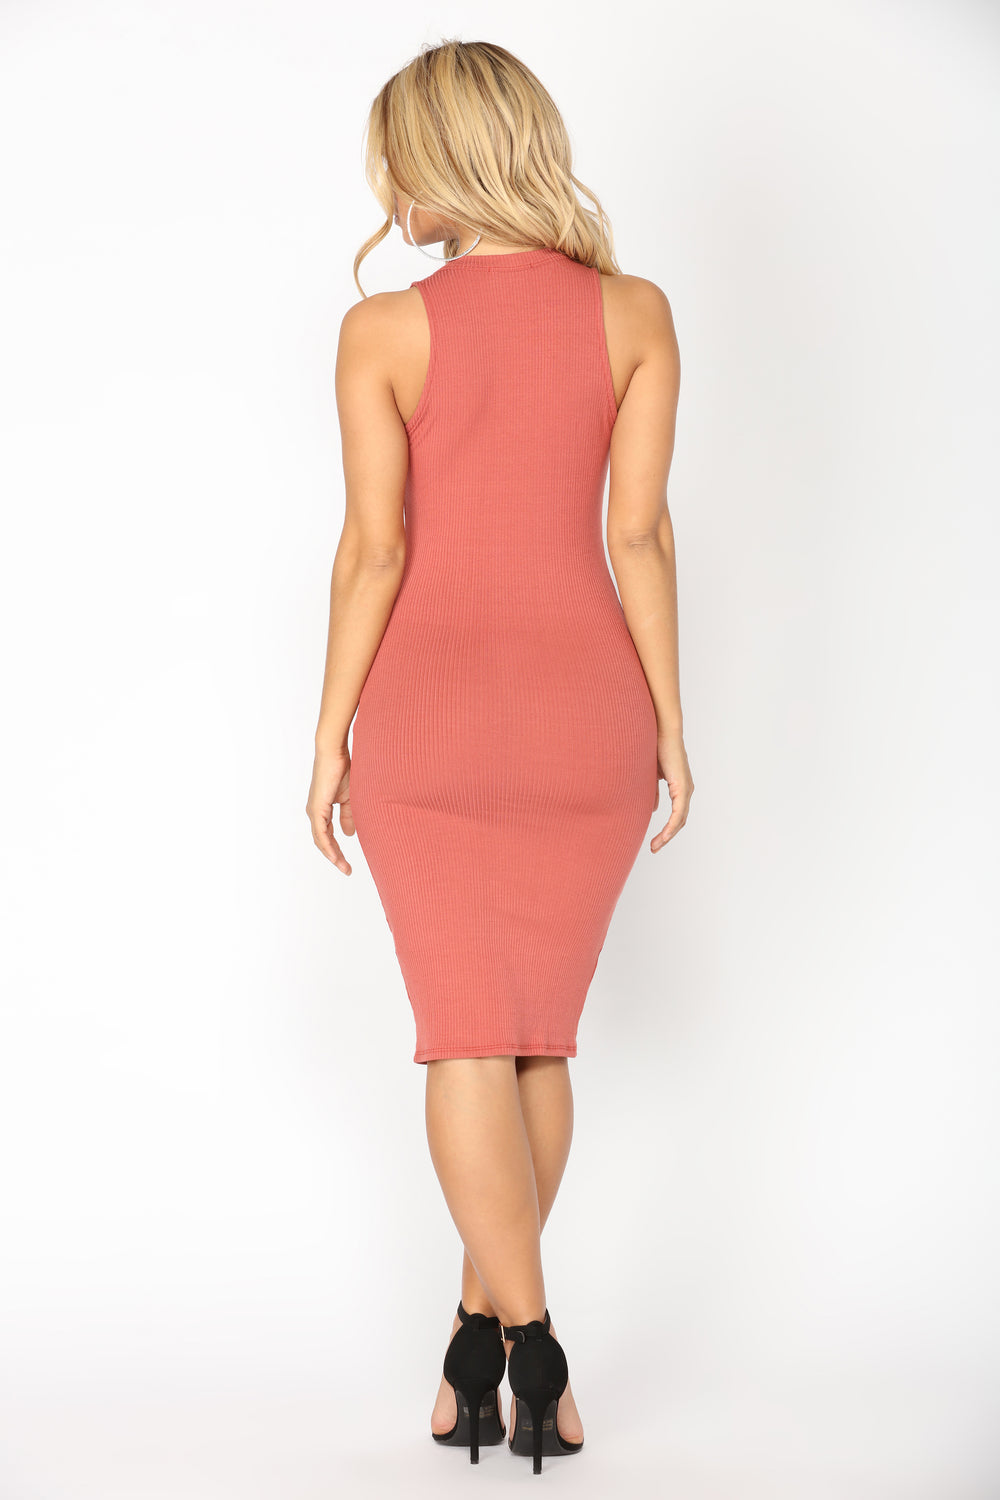 Alisa Ribbed Dress - Marsala